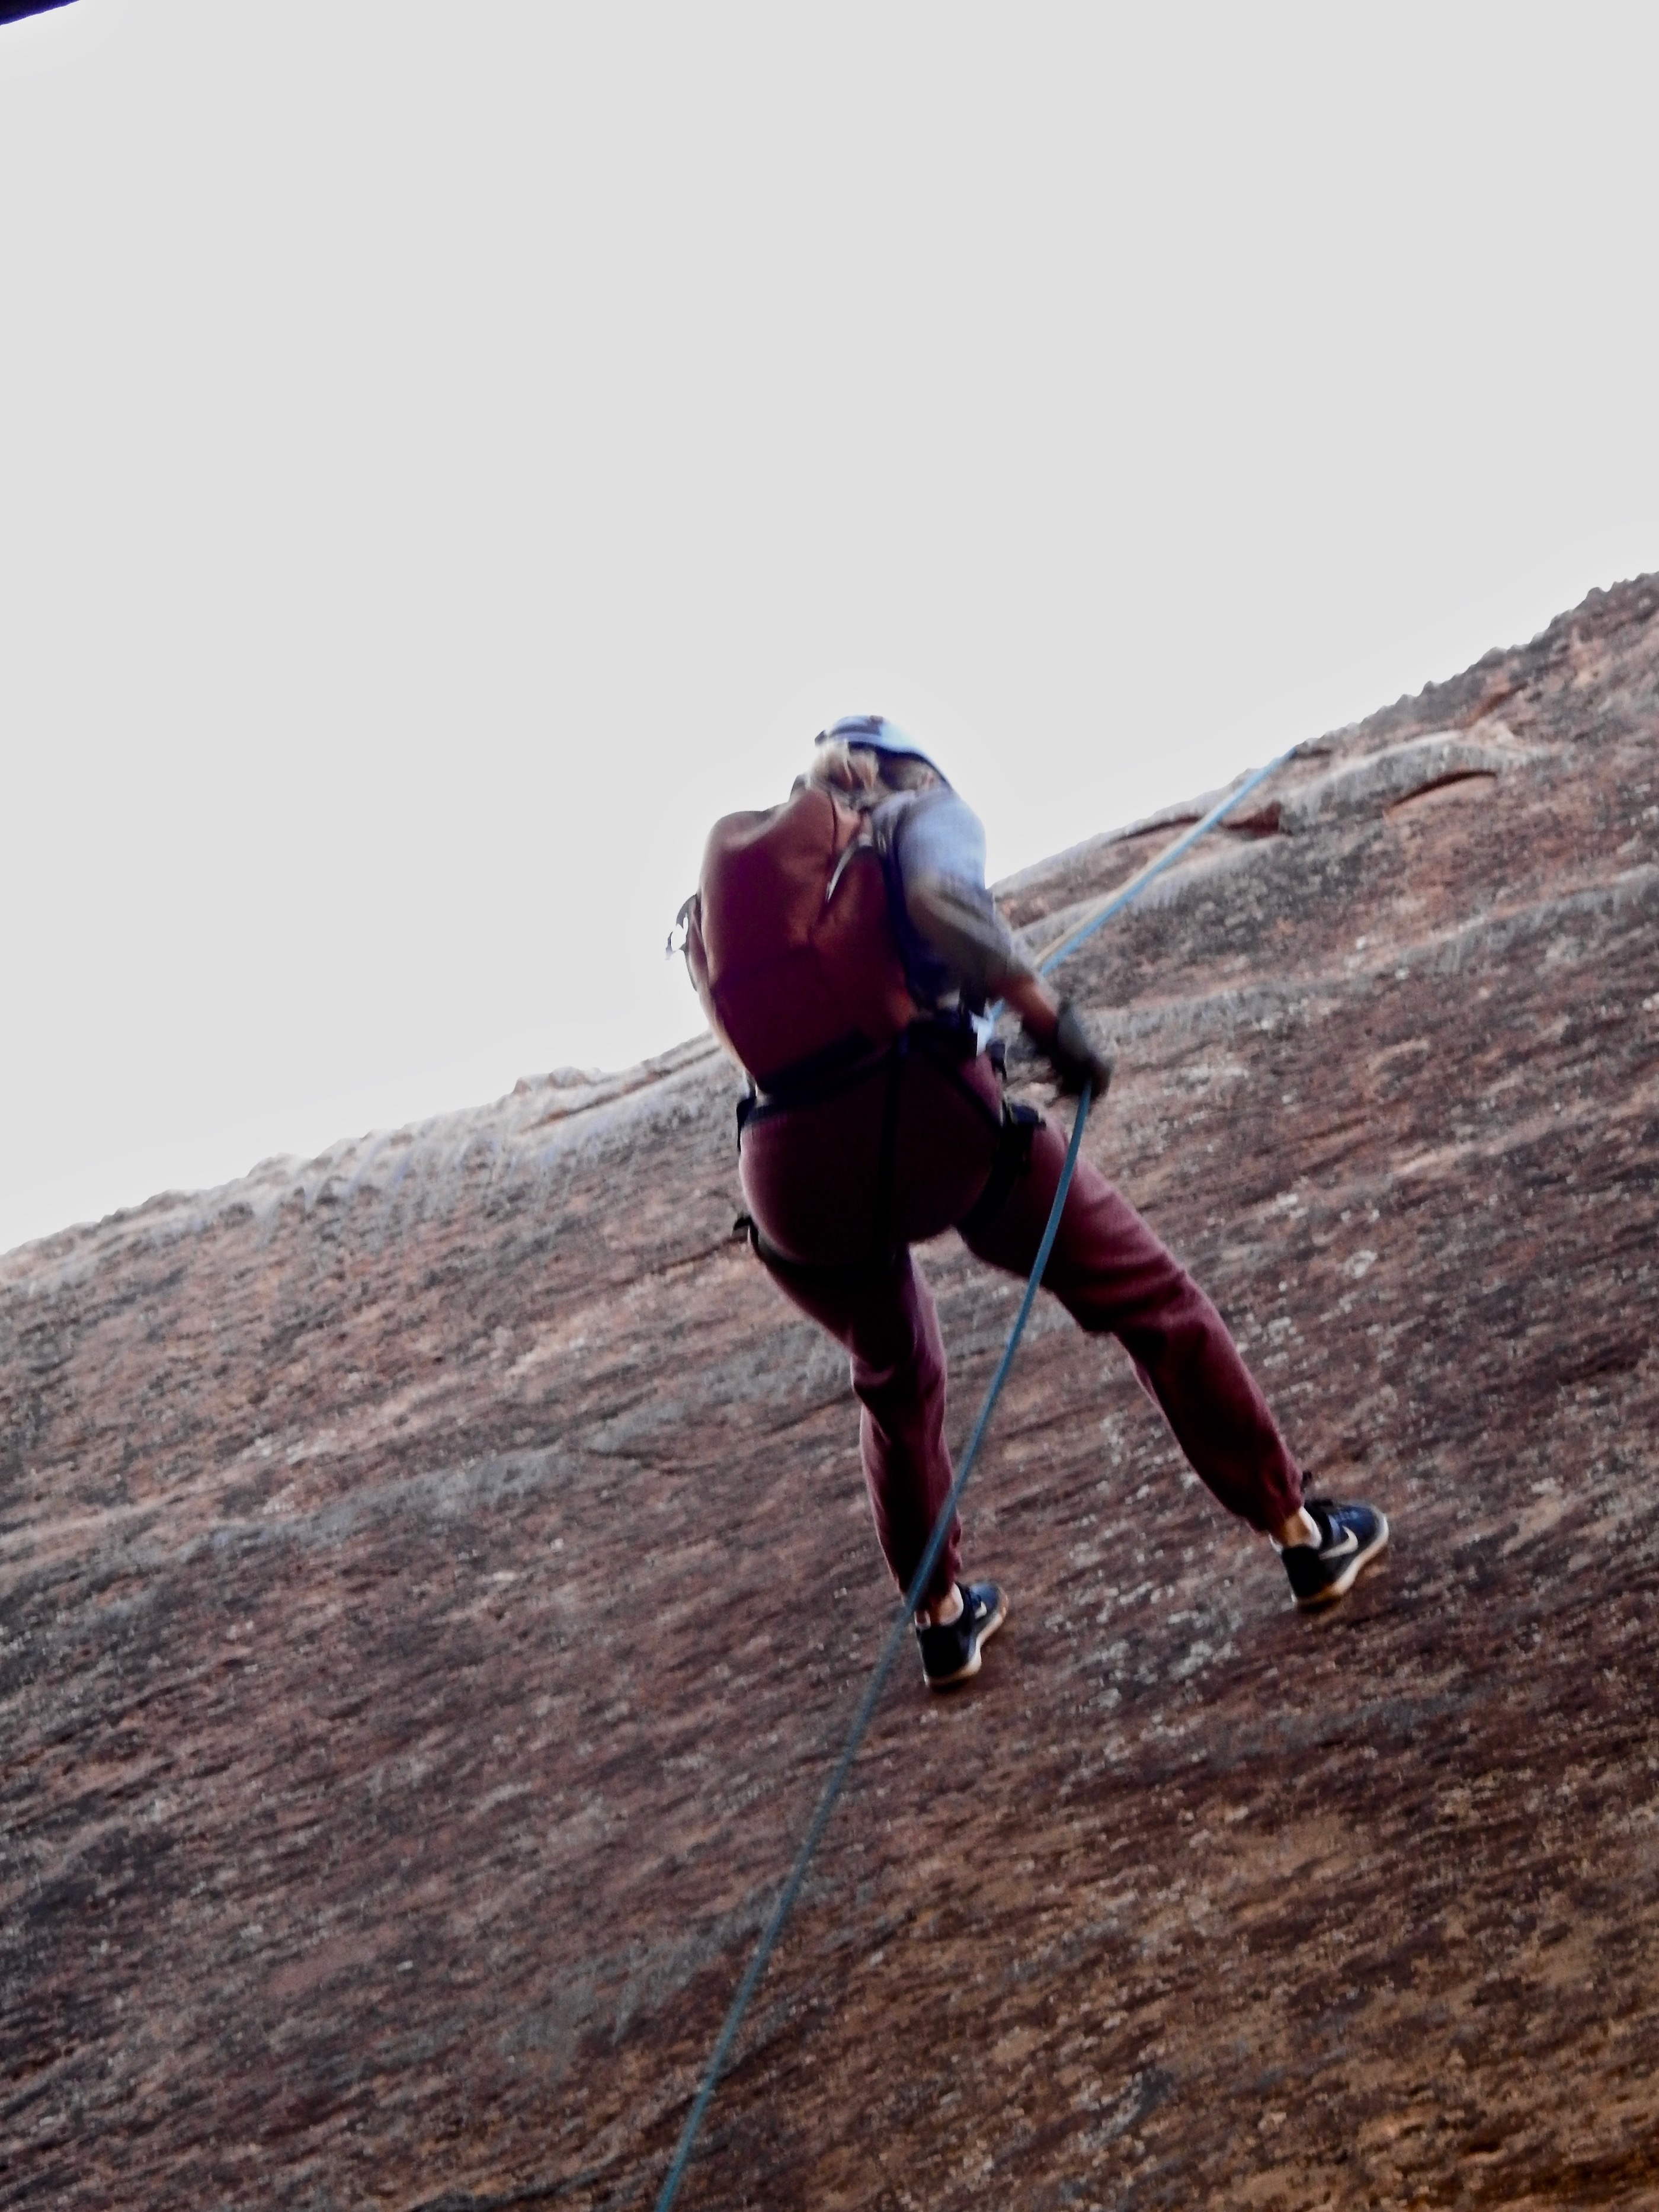 Hilary rappelling.